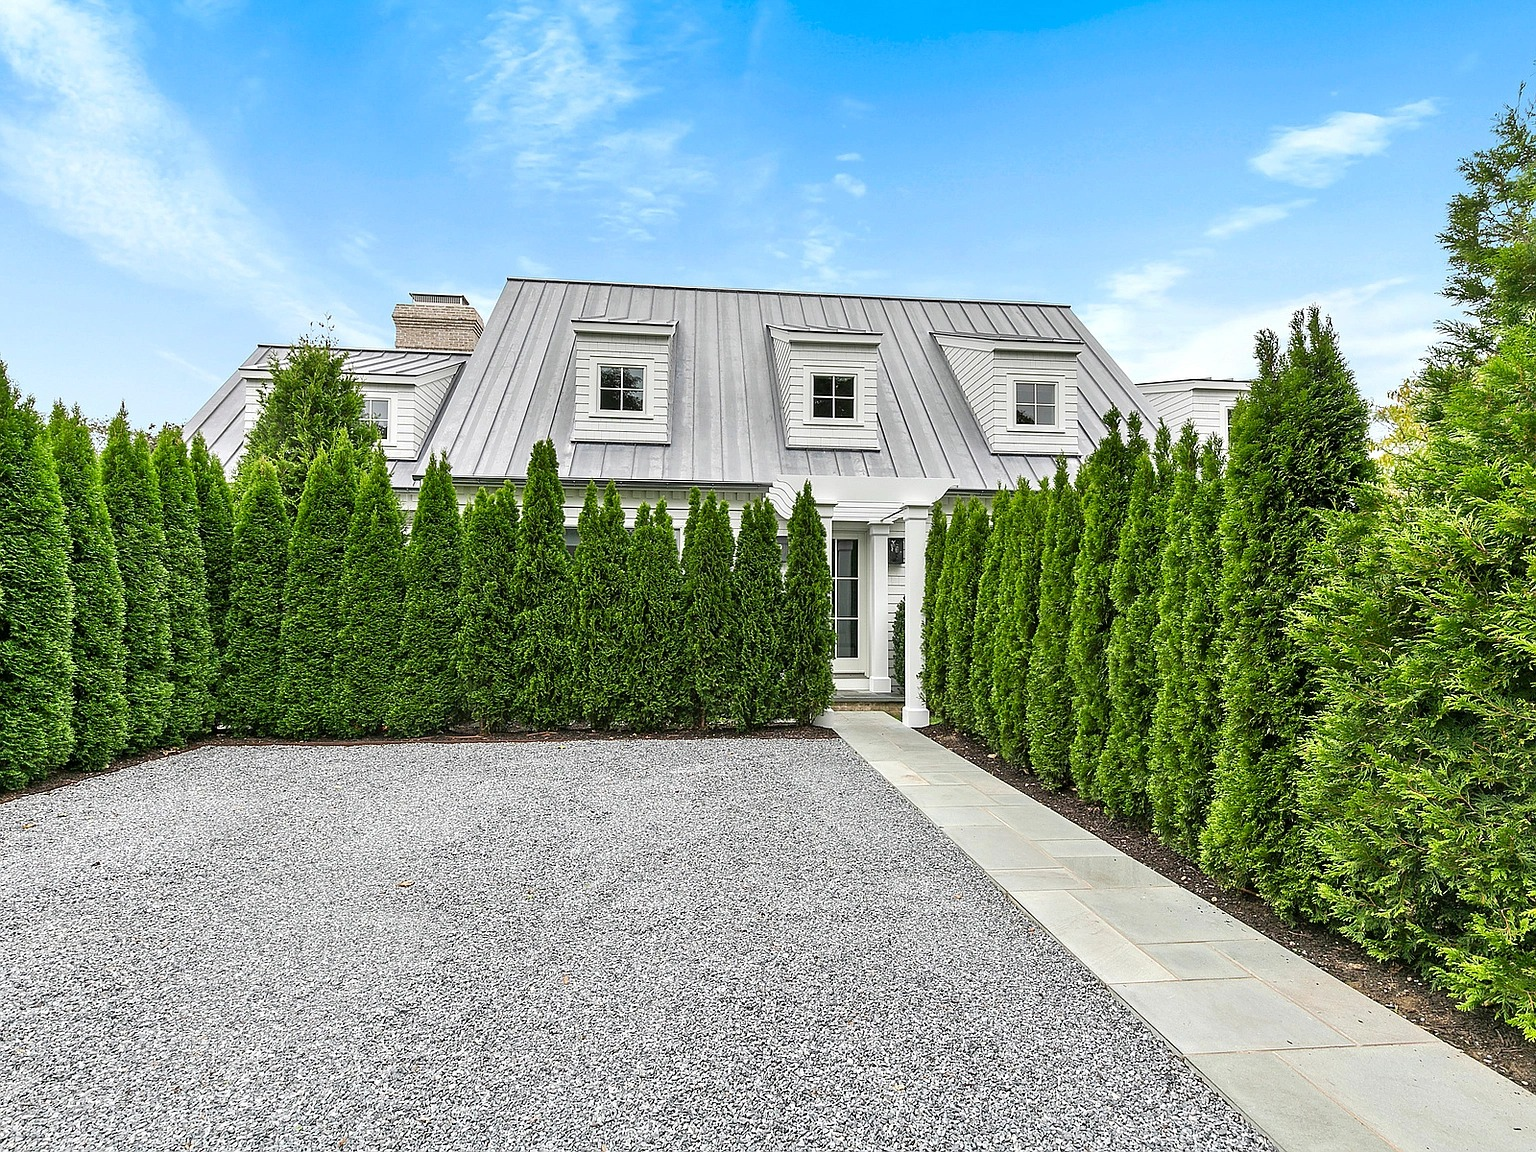 37 Church St, East Hampton, NY 11937 - $3,150,000 home for sale, house images, photos and pics gallery